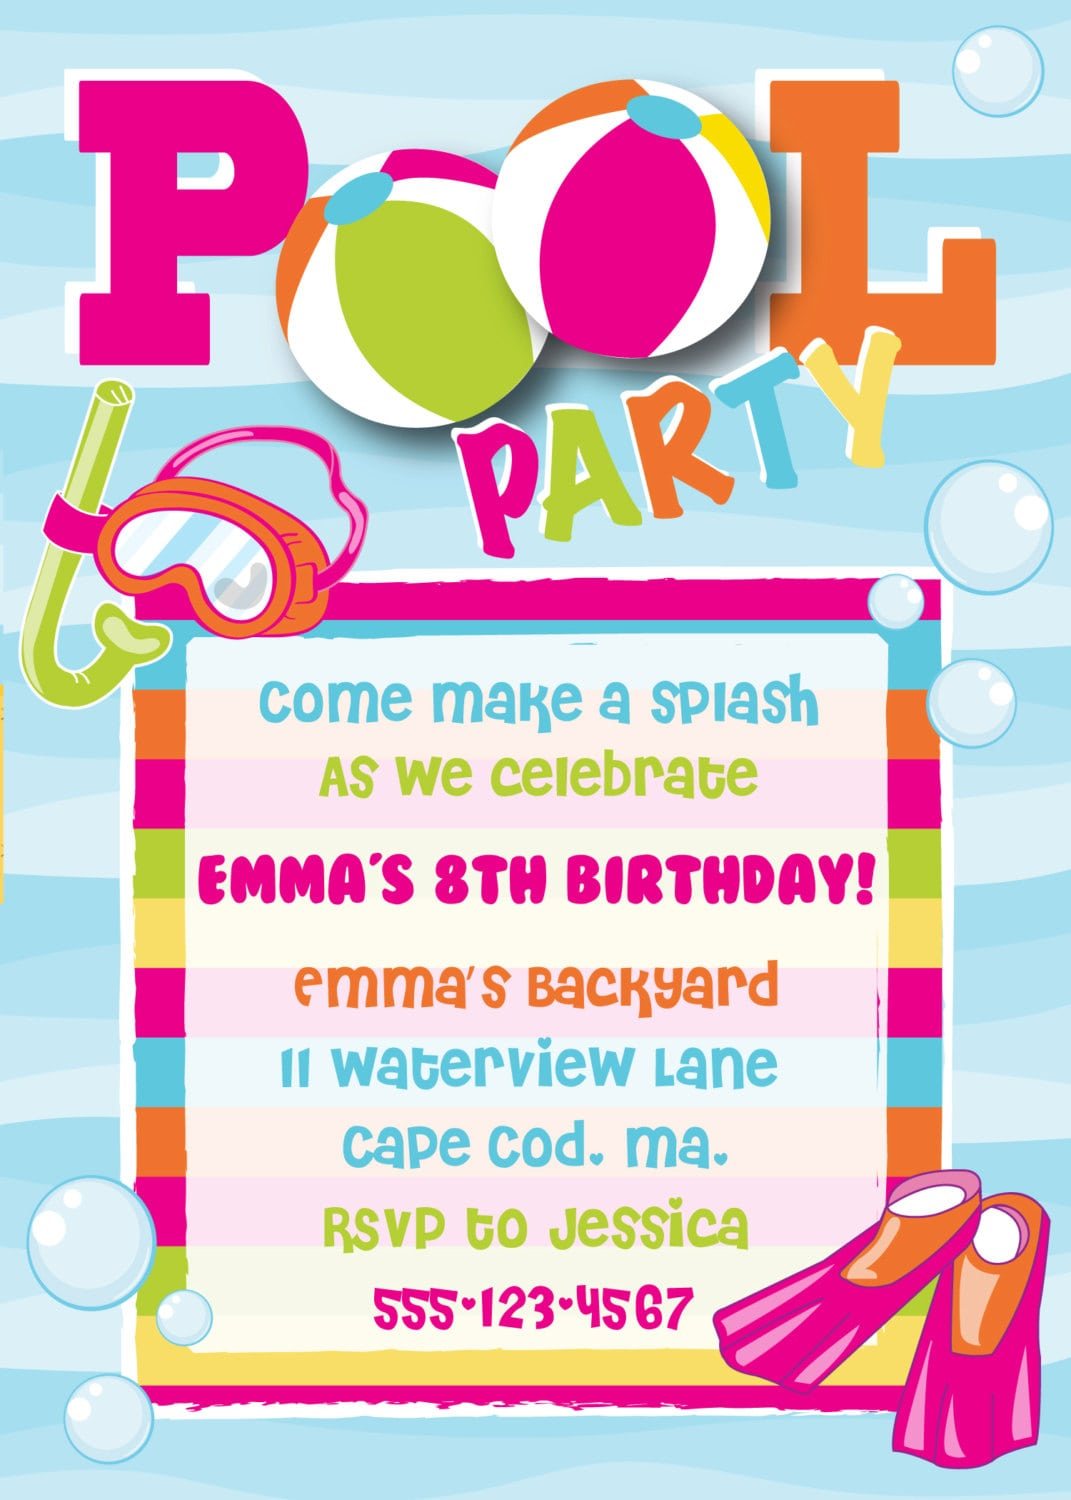 Beach Party Invitation Wording Ideas is amazing invitation layout